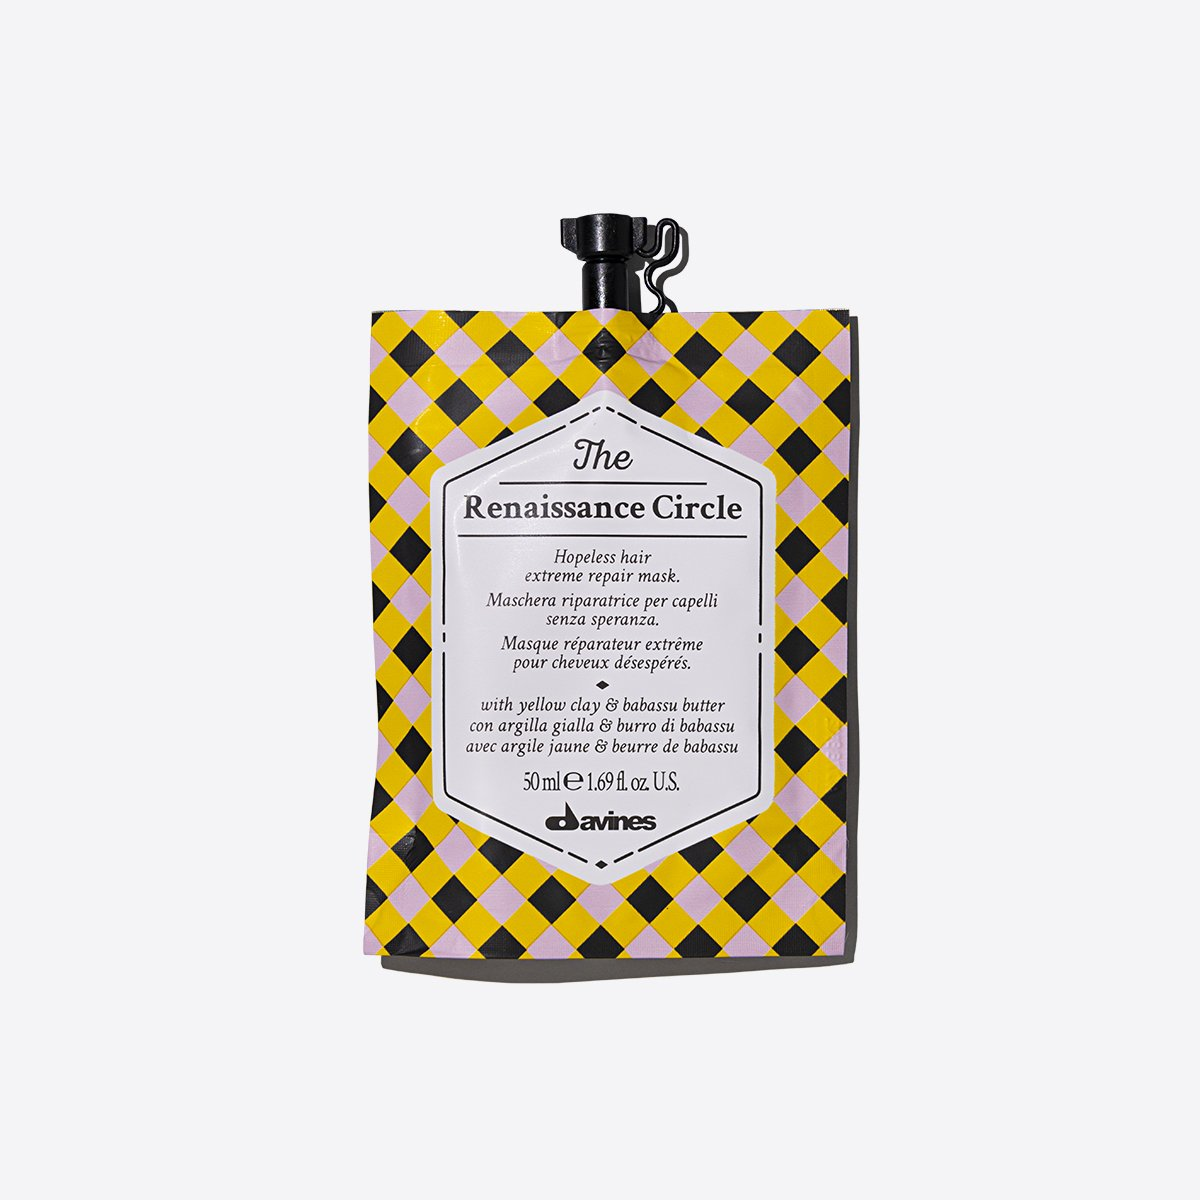 The Renaissance Circle by Davines